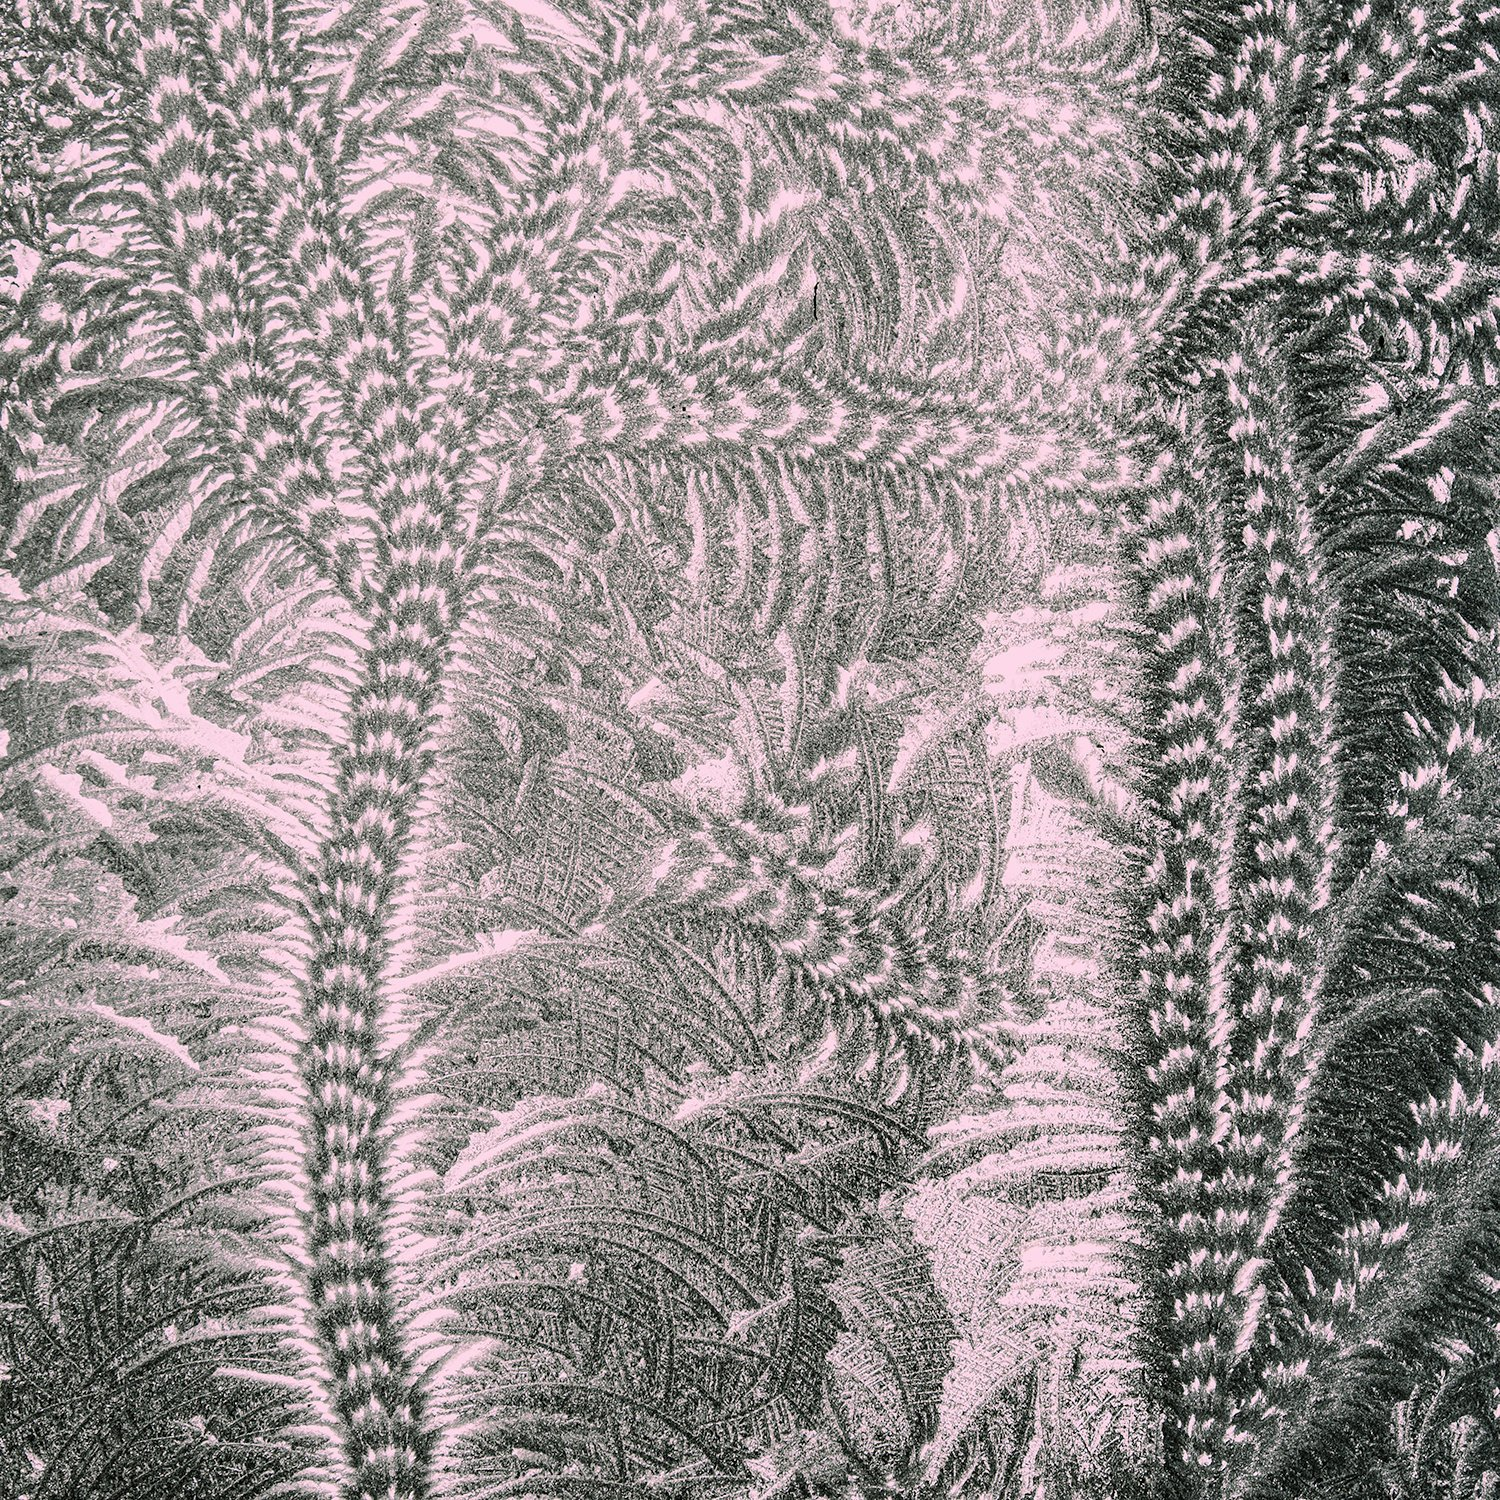 texture-textures-pressed-glass-frost-patterns-scroll-fern-pink-grey-pale-charcoal